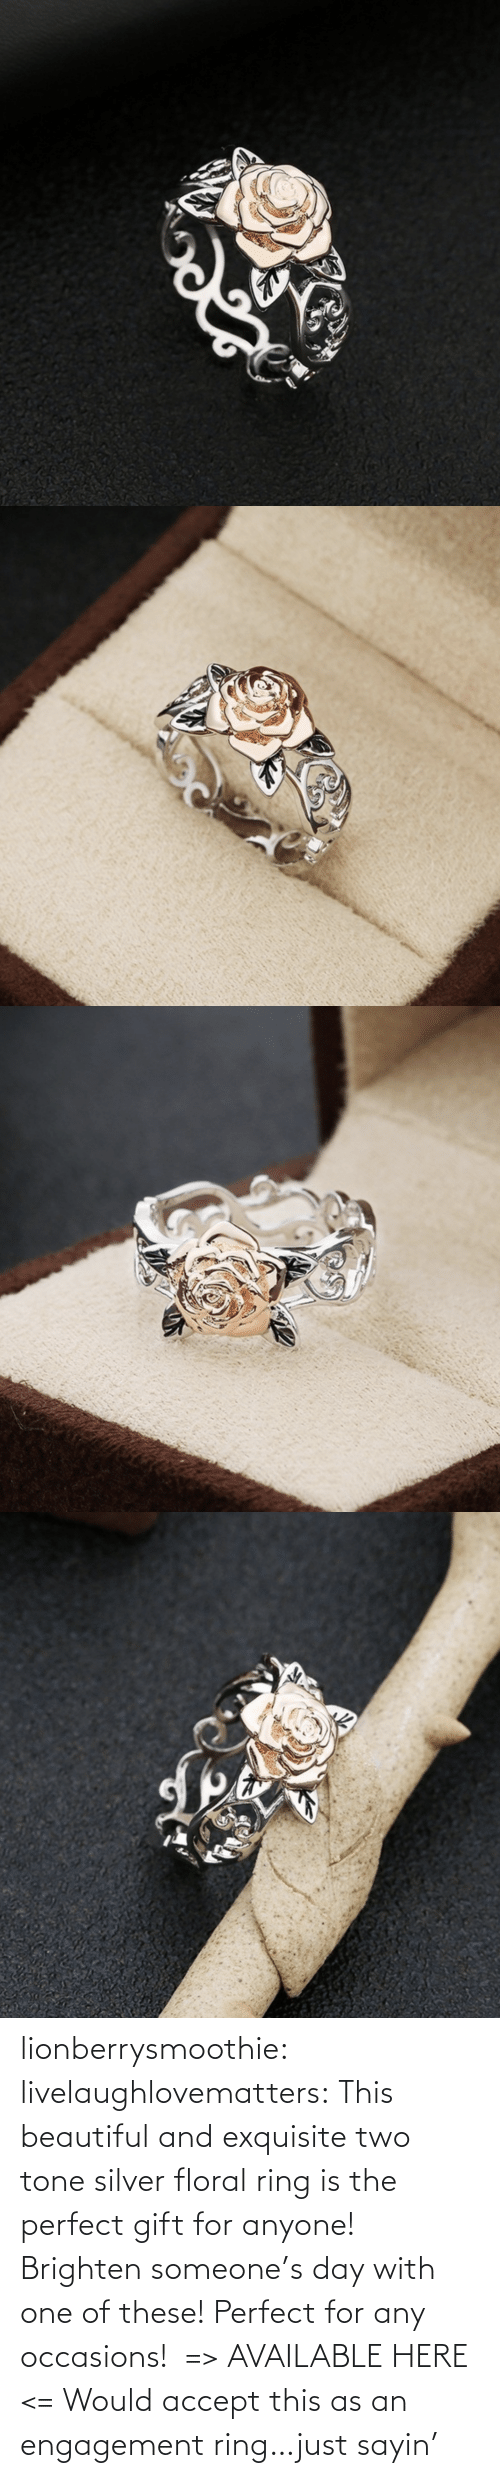 Silver: lionberrysmoothie:  livelaughlovematters: This beautiful and exquisite two tone silver floral ring is the perfect gift for anyone! Brighten someone's day with one of these! Perfect for any occasions!  => AVAILABLE HERE <=    Would accept this as an engagement ring…just sayin'